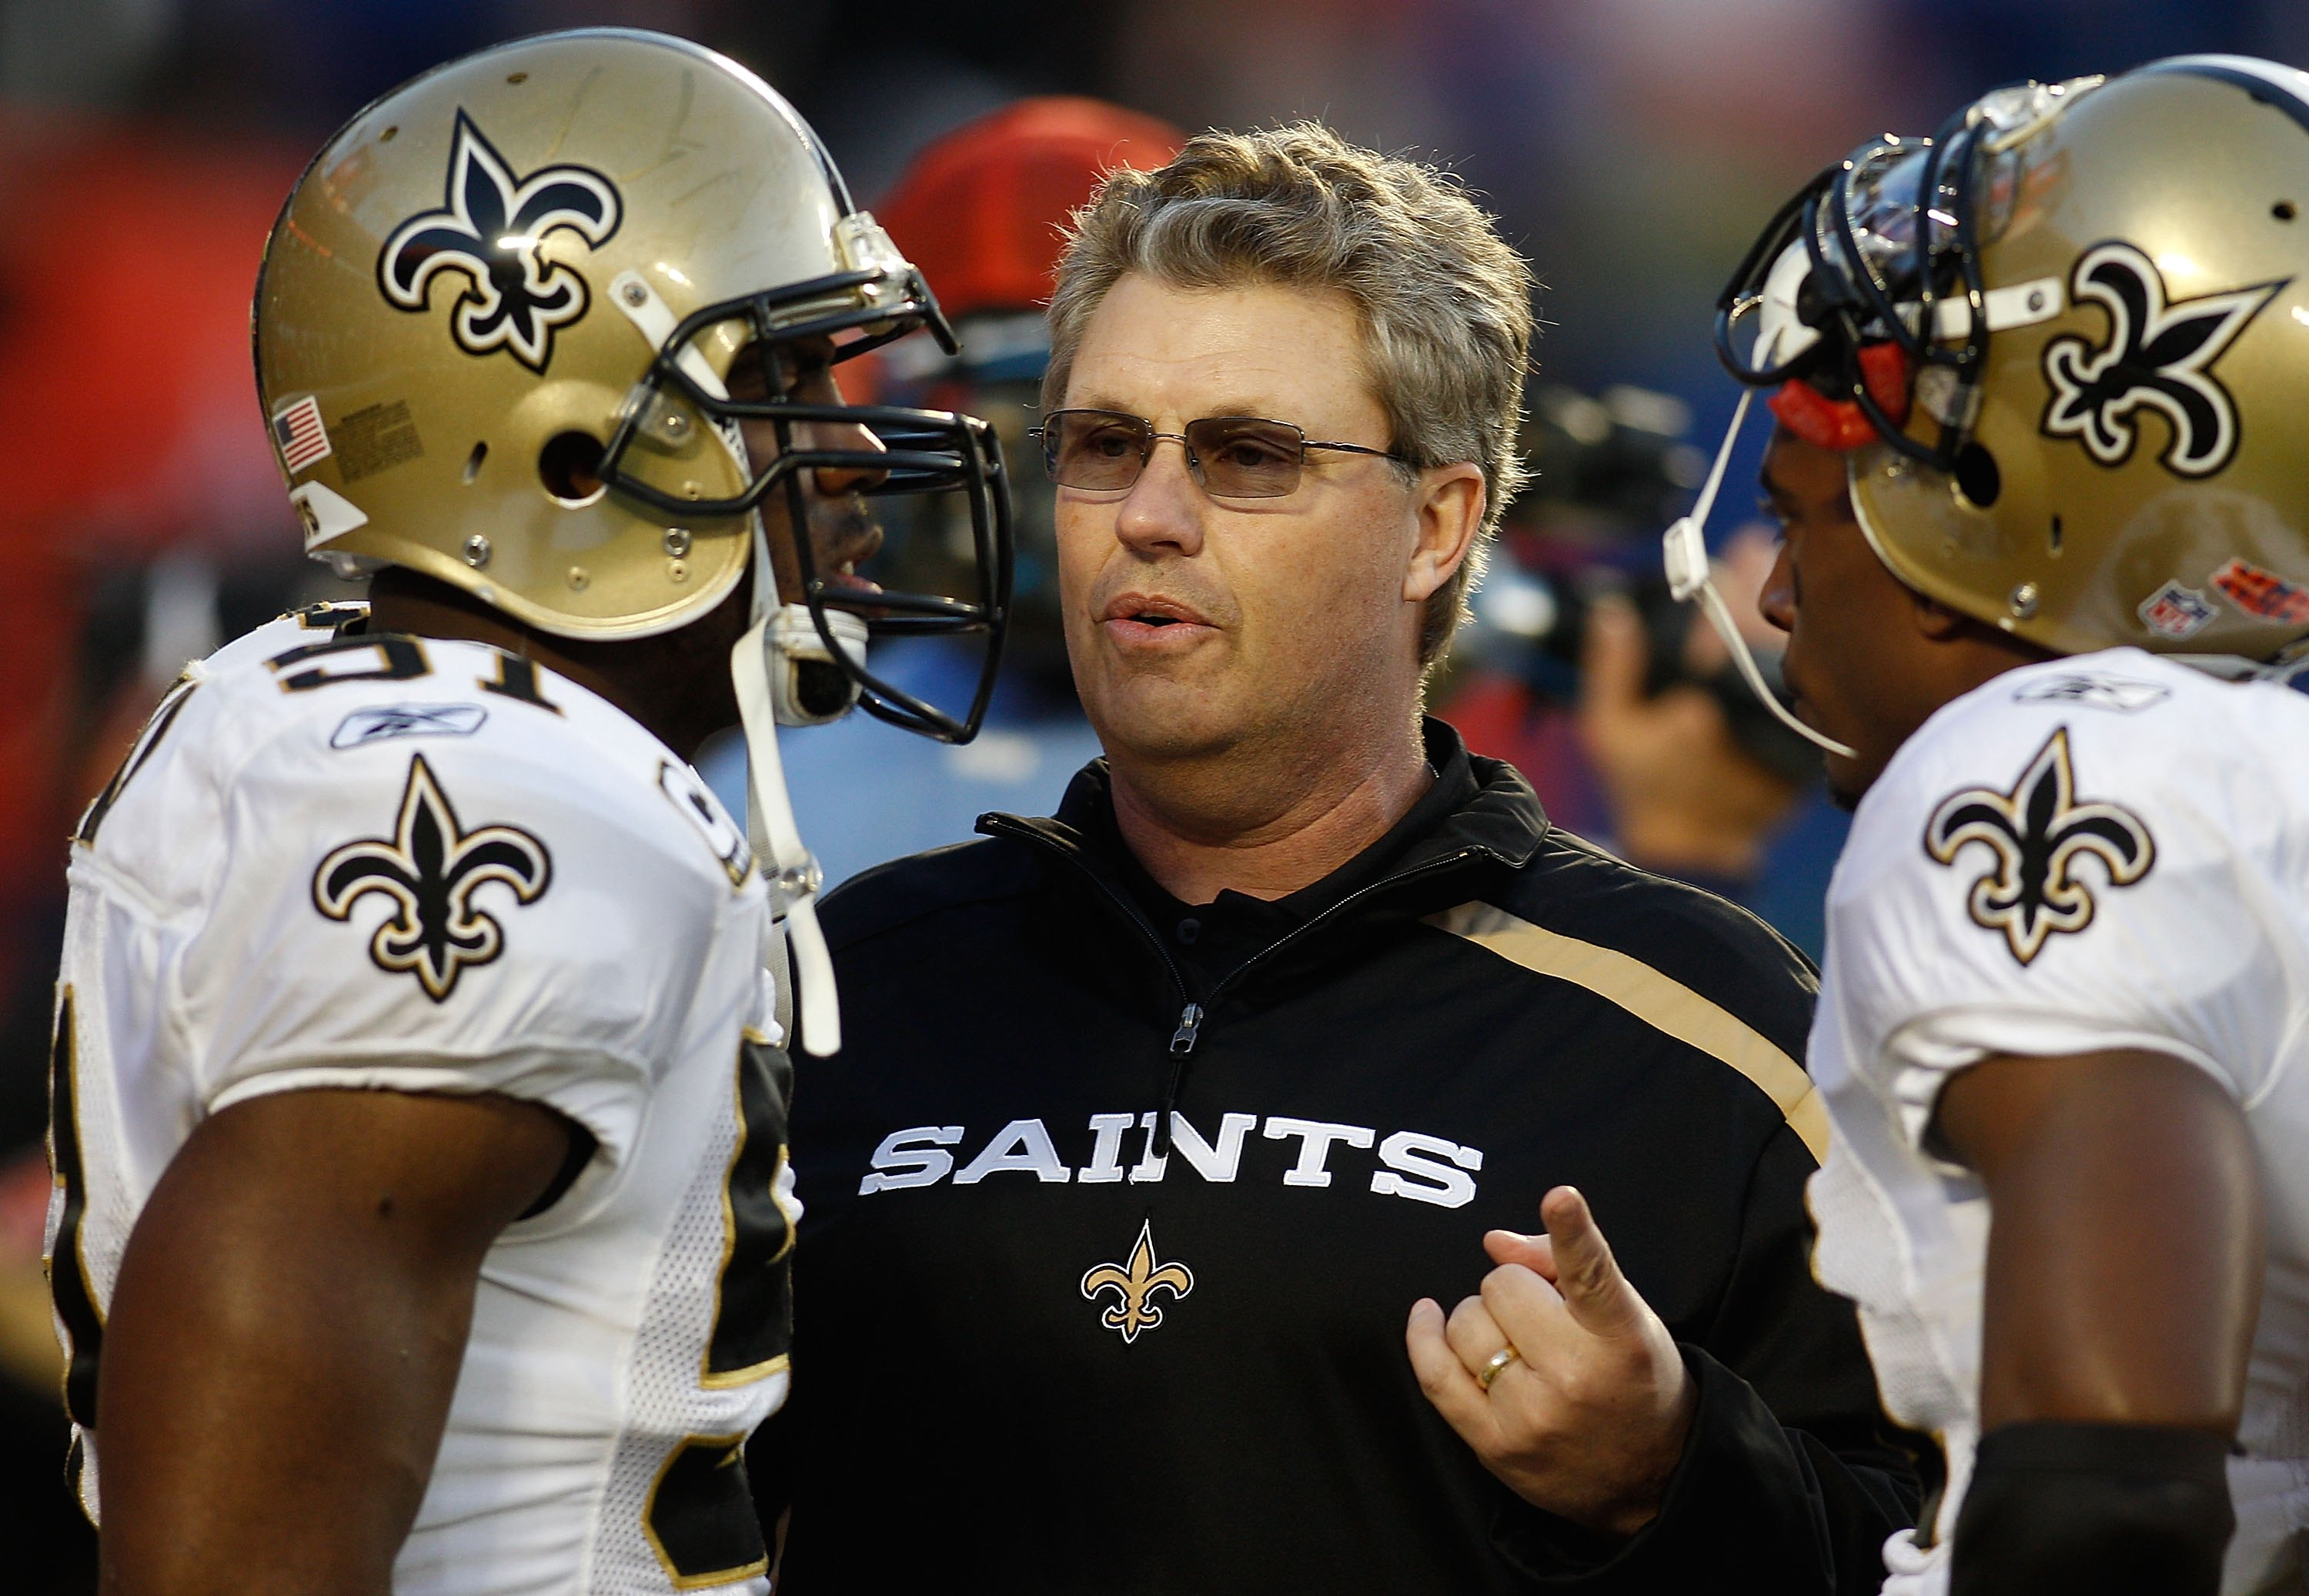 MIAMI GARDENS, FL - FEBRUARY 07:  Defensive coordinator Gregg Williams (C) of the New Orleans Saints talks with Jonathan Vilma #51 (L) and Roman Harper #41 (R) on the field prior to Super Bowl XLIV against the Indianapolis Colts on February 7, 2010 at Sun